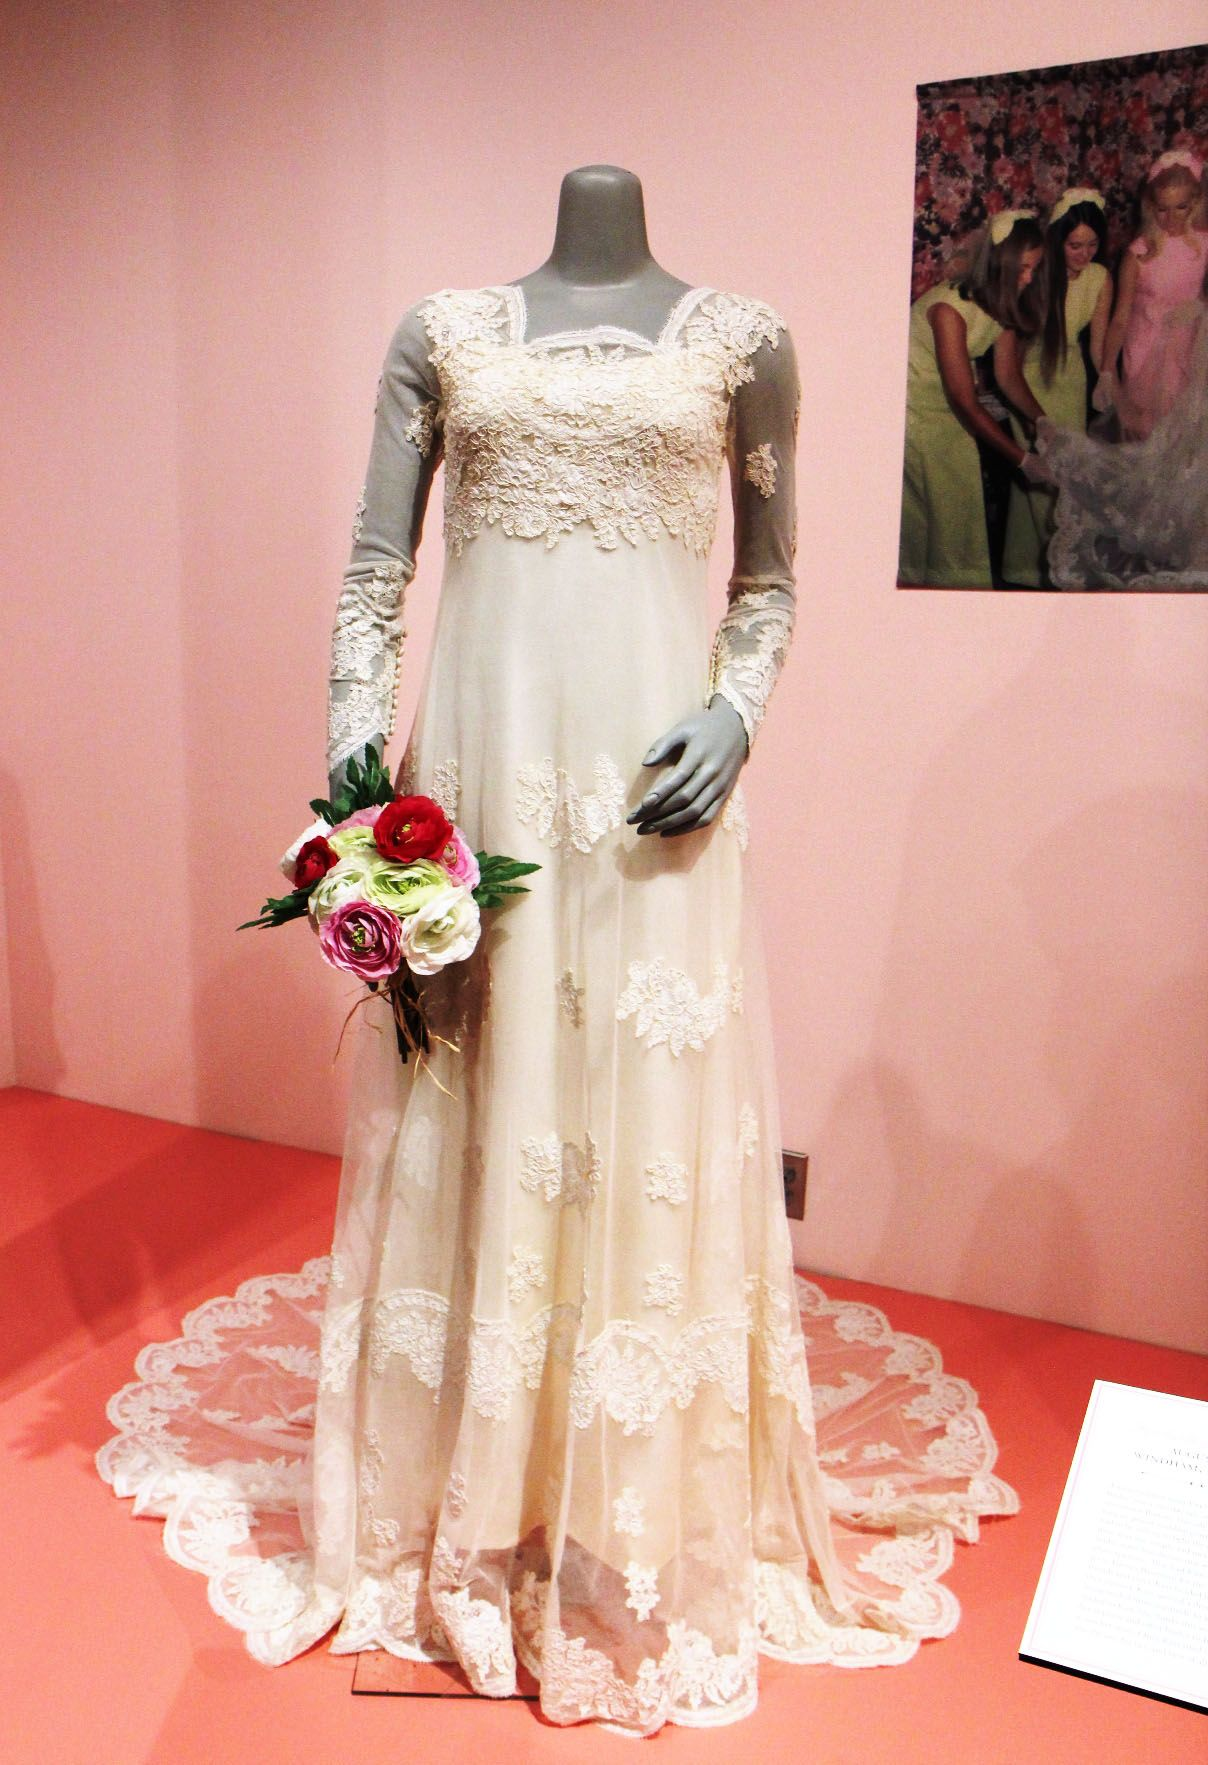 Pop culture often influences wedding fashion. This wedding gown on ...